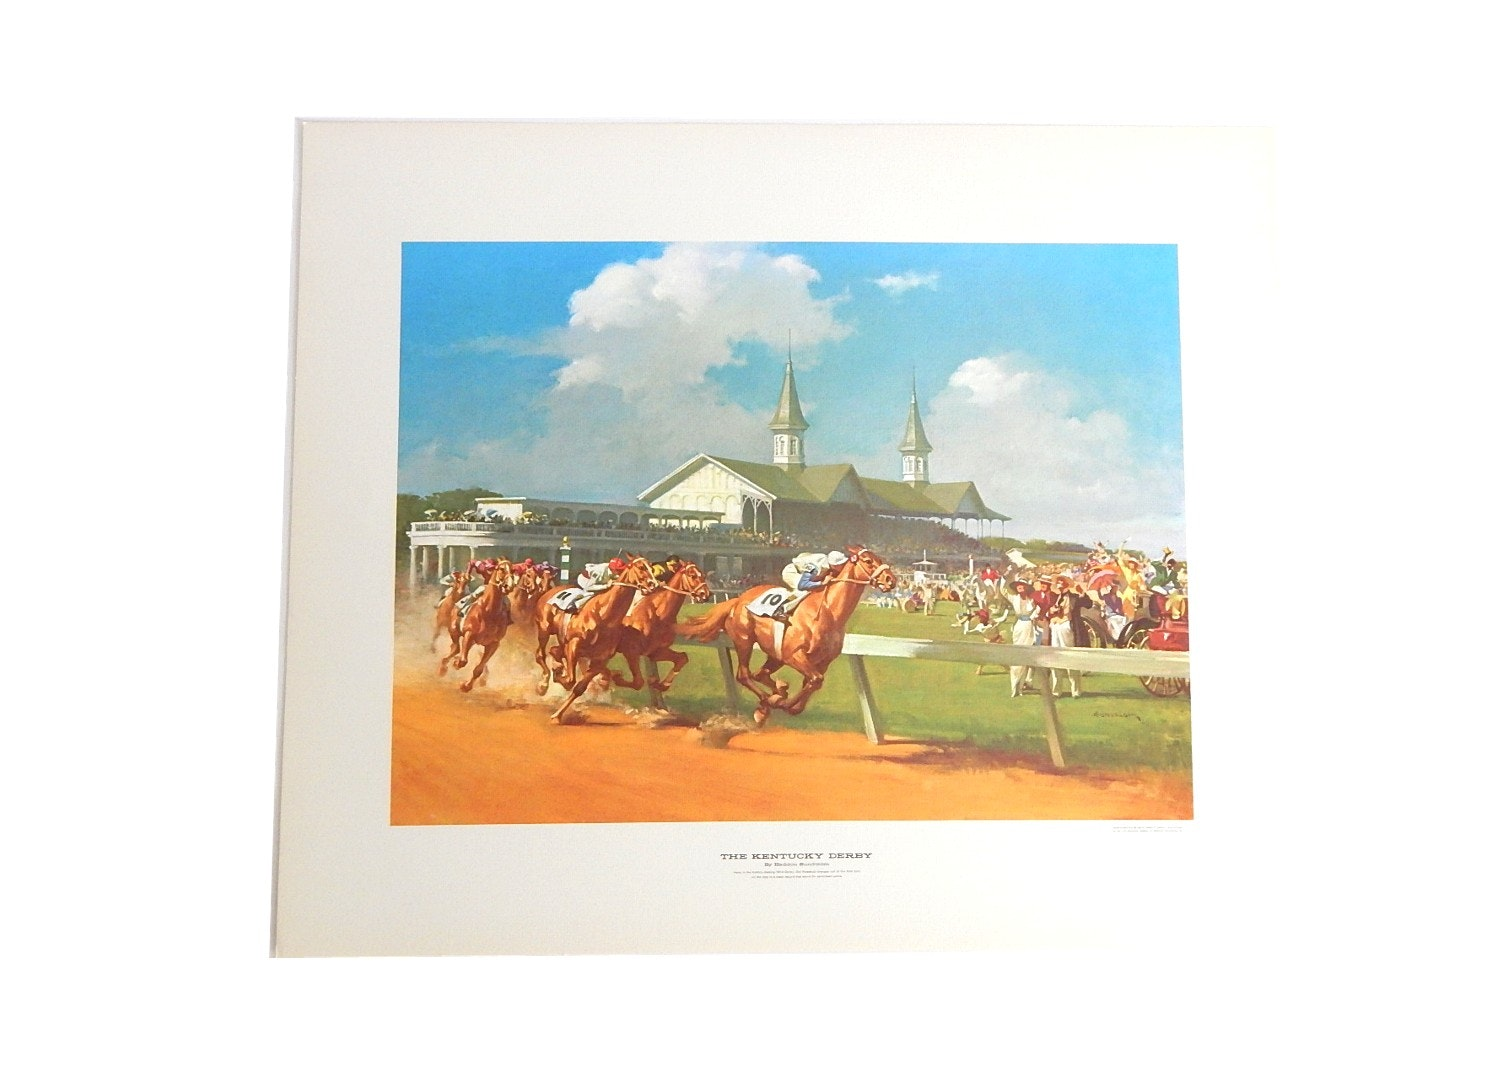 "Unframed 1963 Robert Hensley Offset Lithograph Print ""The Kentucky Derby"""